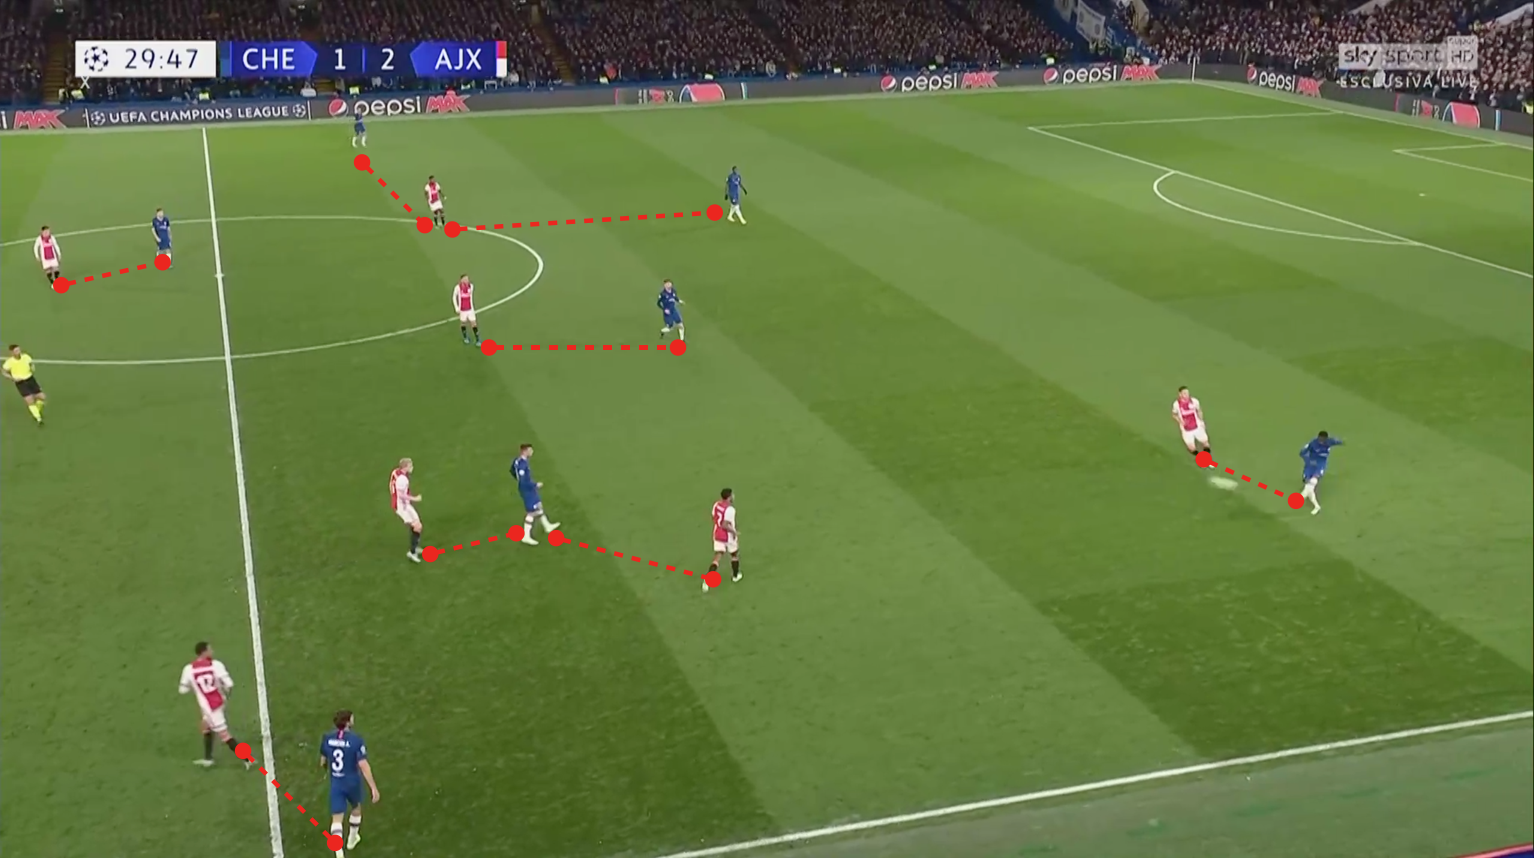 UEFA Champions League 2019/20: Chelsea vs Ajax - tactical analysis tactics